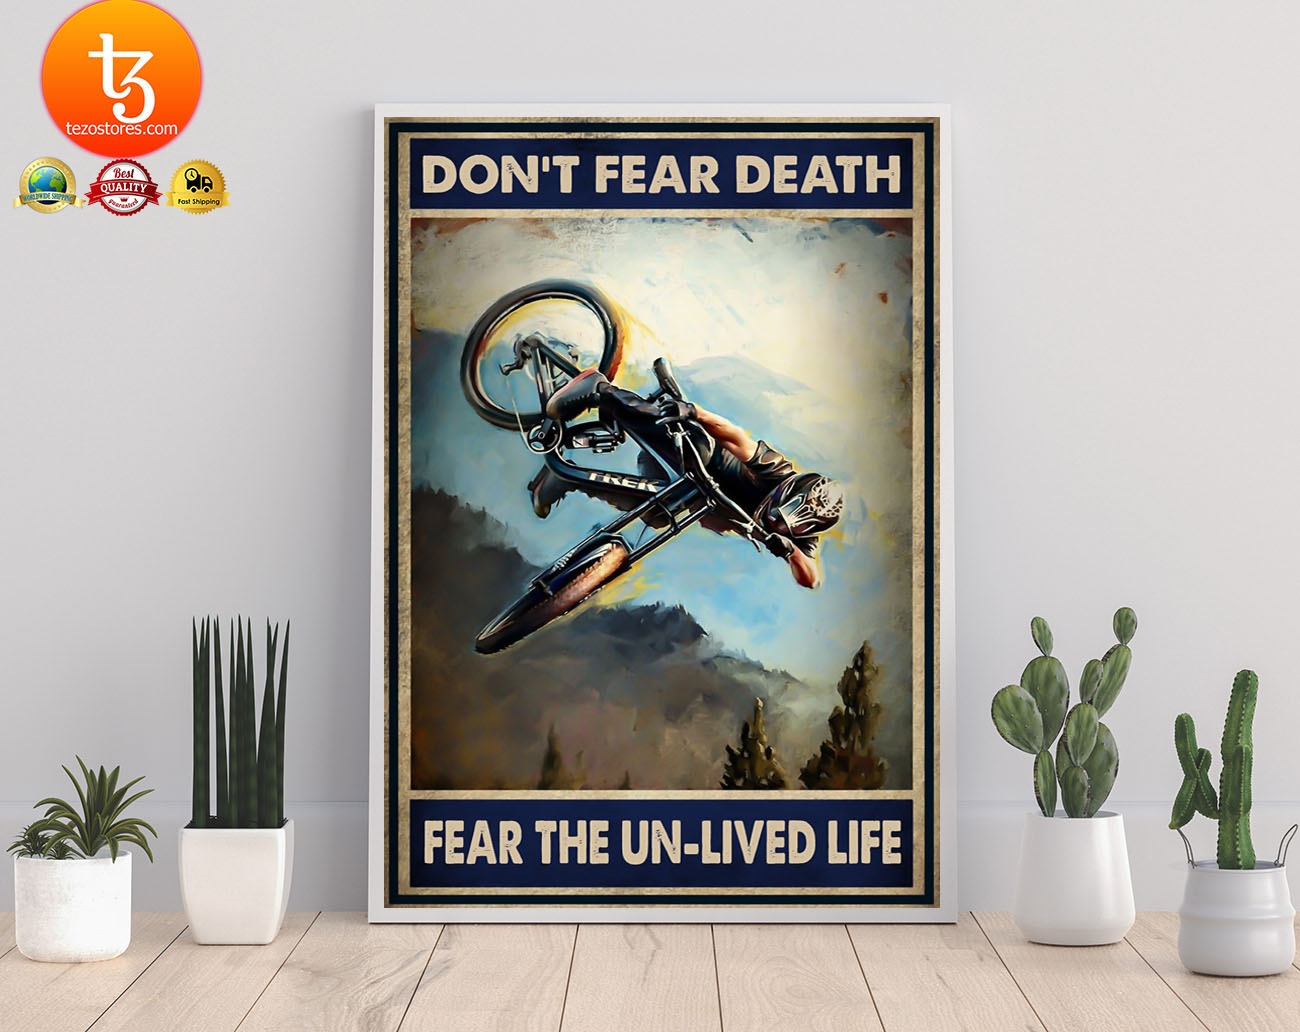 Don't fear death fear the un-lived life poster